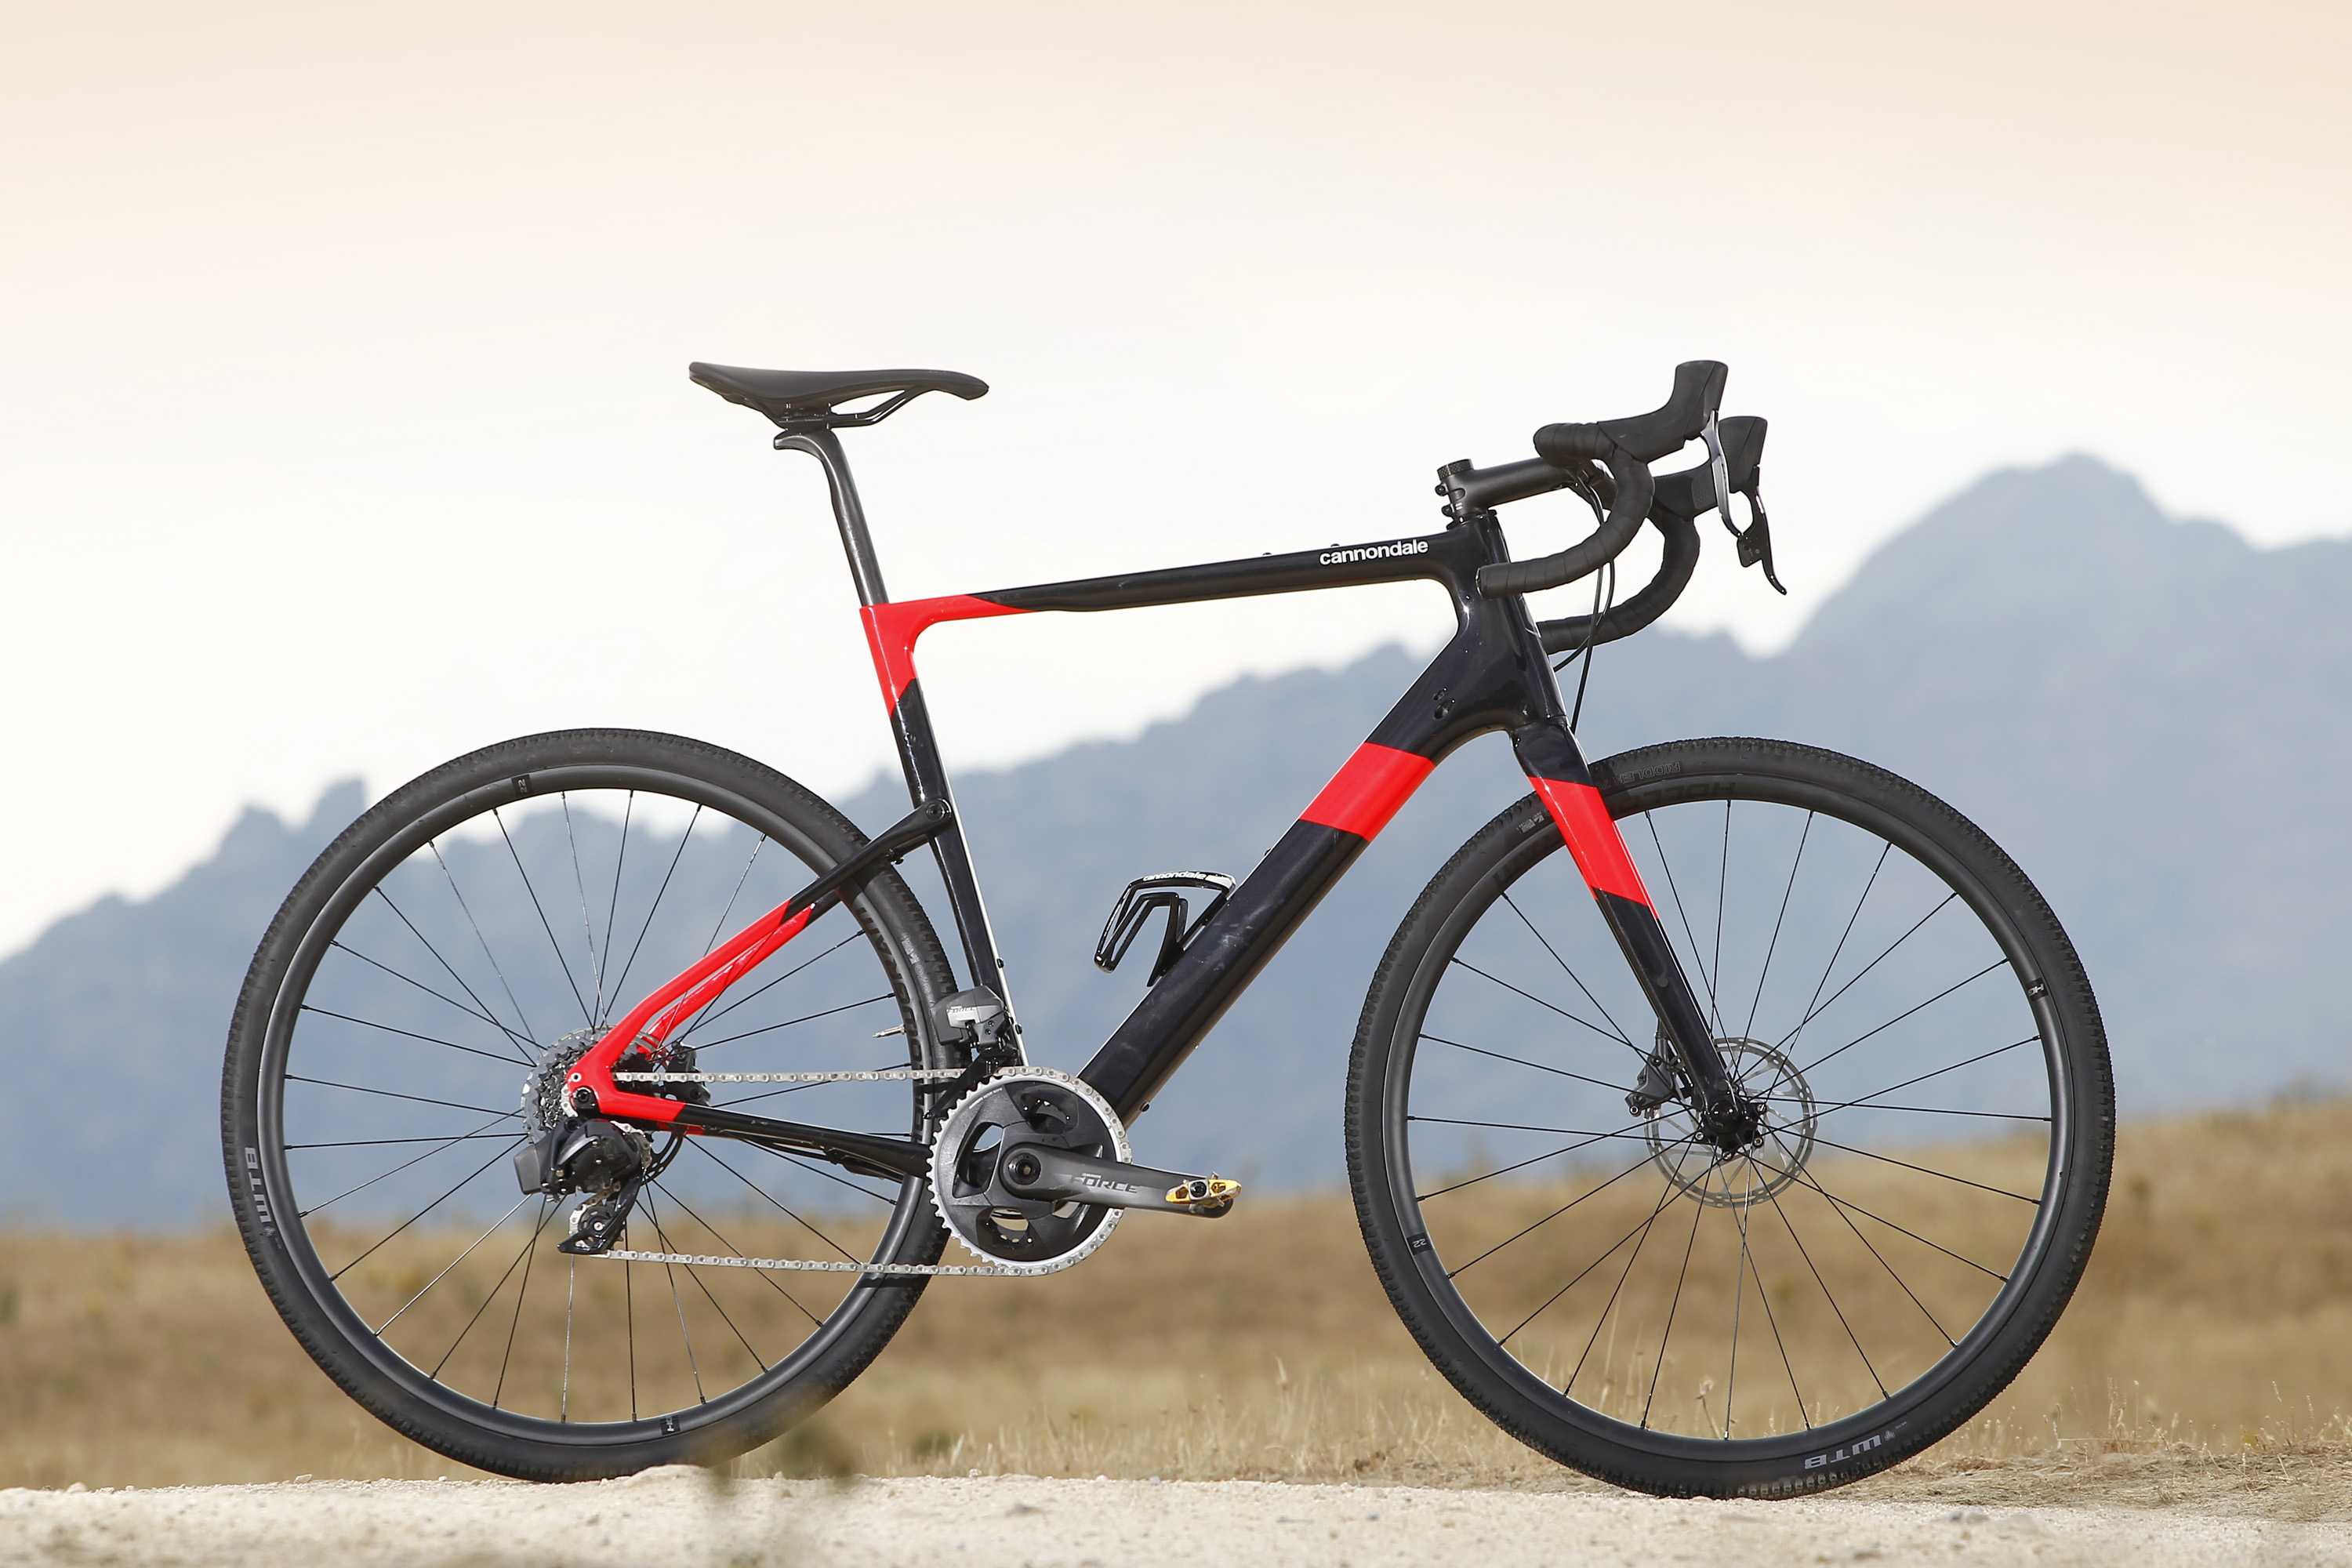 Test: Cannondale Topstone Carbon Force eTap AXS